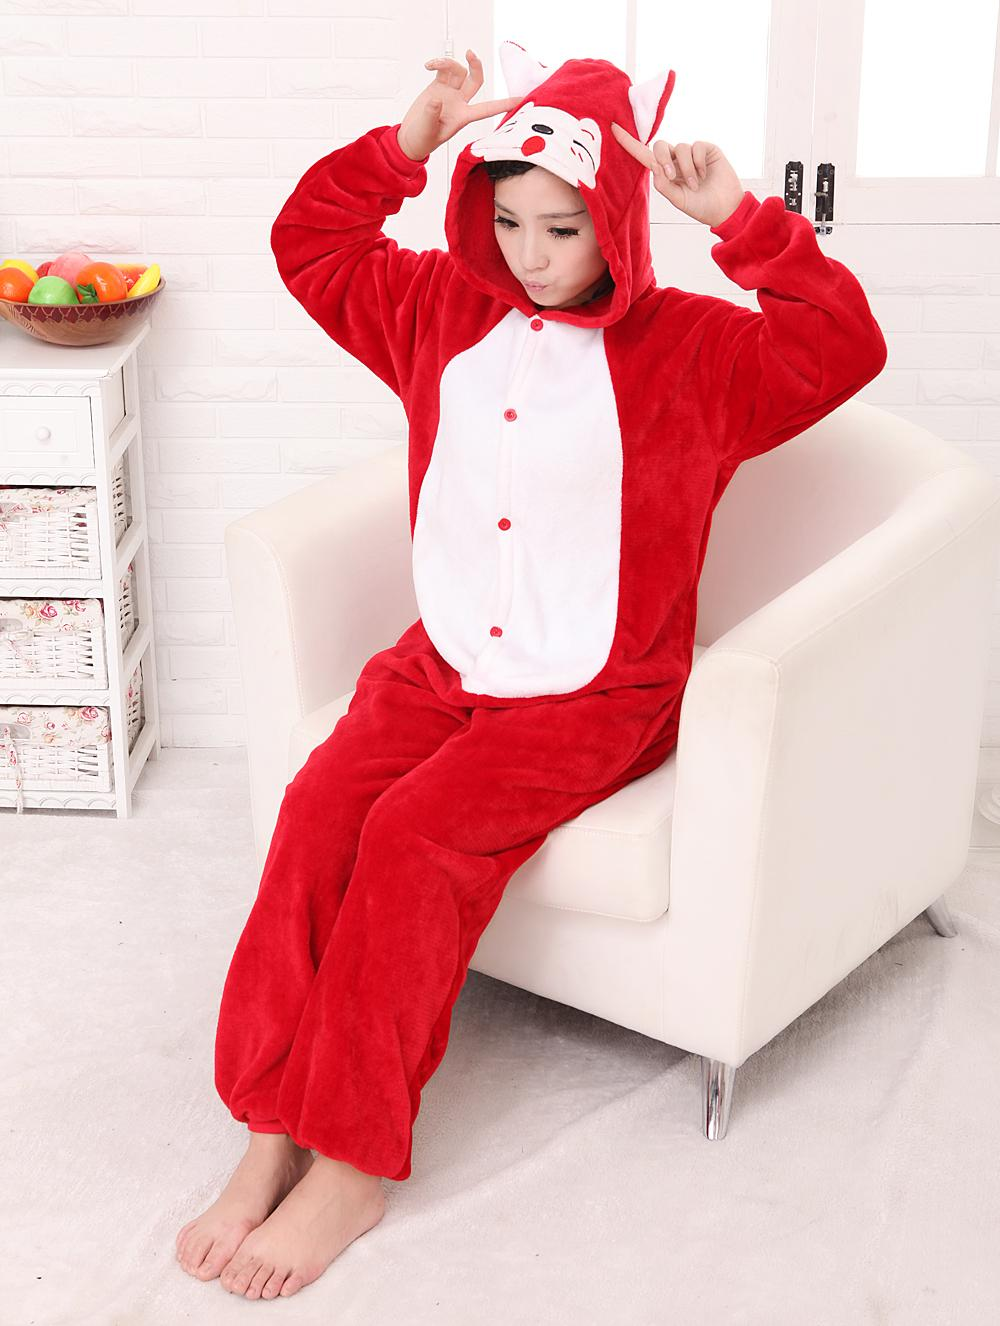 free pp Unisex Adult Flannel Fashion Women Pajamas Party Cosplay Animal Onesie Adult Pyjama Sets For Christmas Pikachu/Stitch